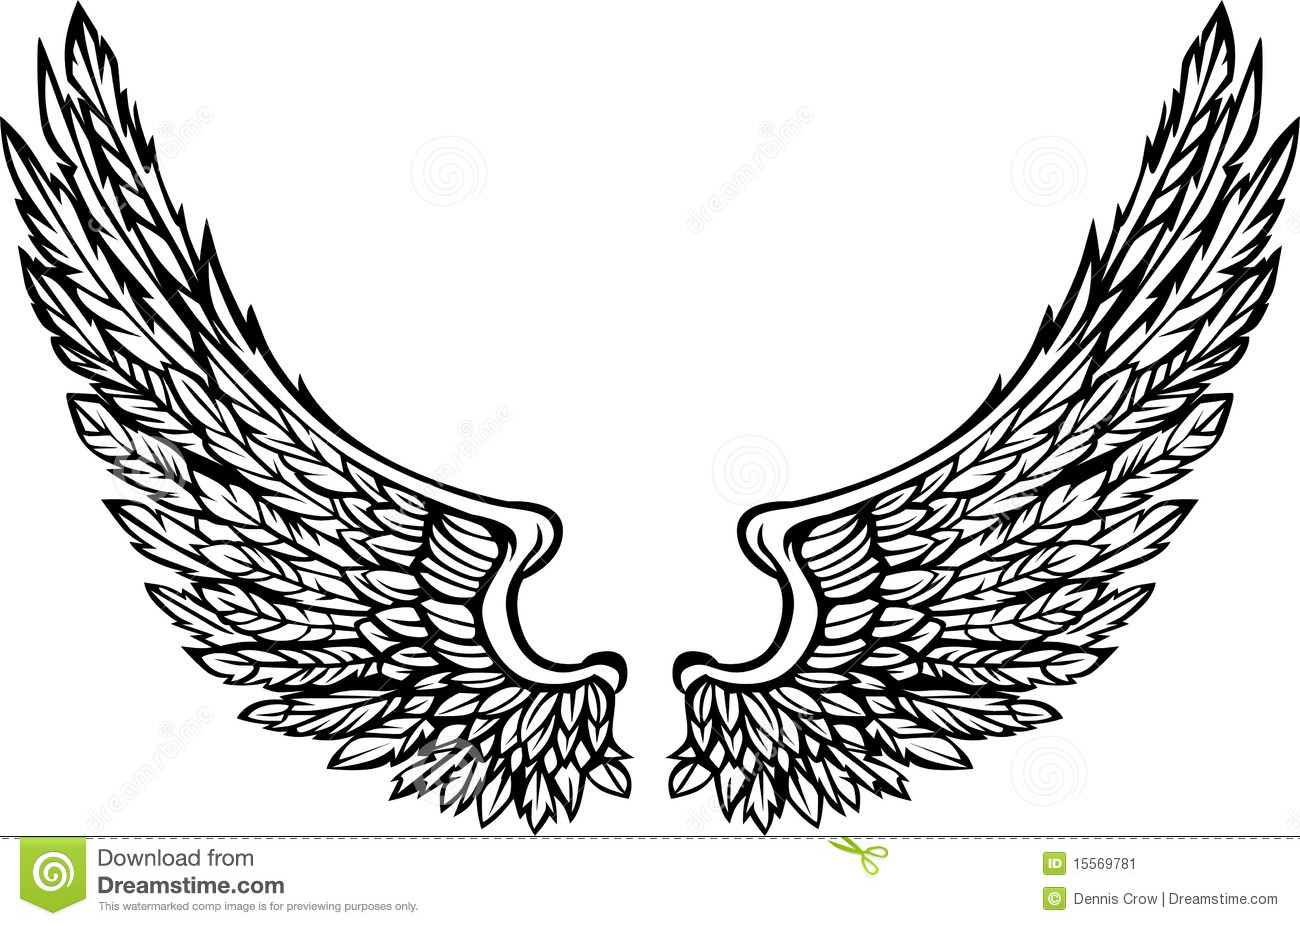 Eagle Or Angel Wings Stock Vector Illustration Of Isolated 43008319